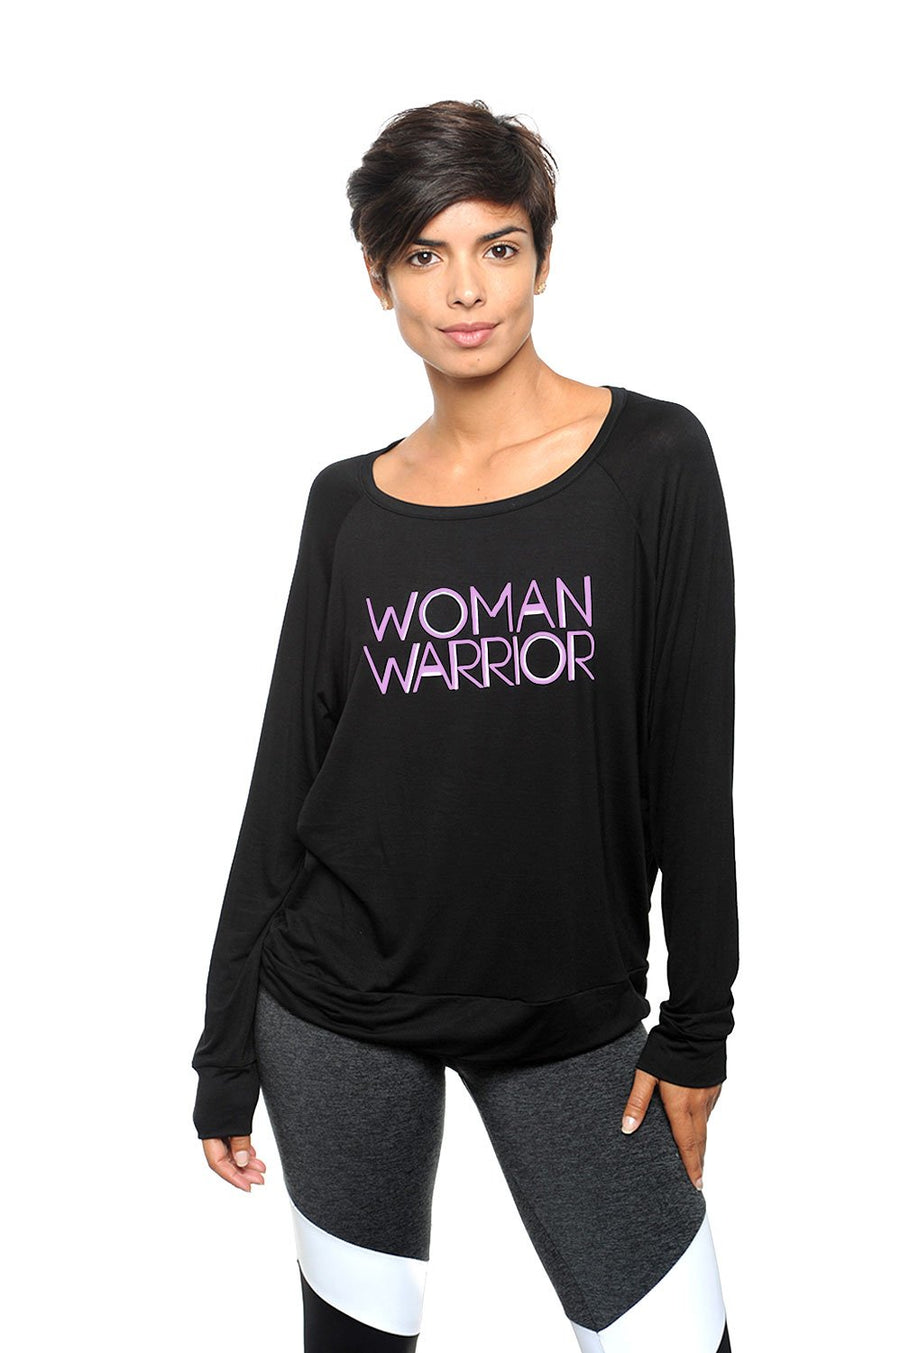 Woman Warrior Long Sleeve Tee Pink